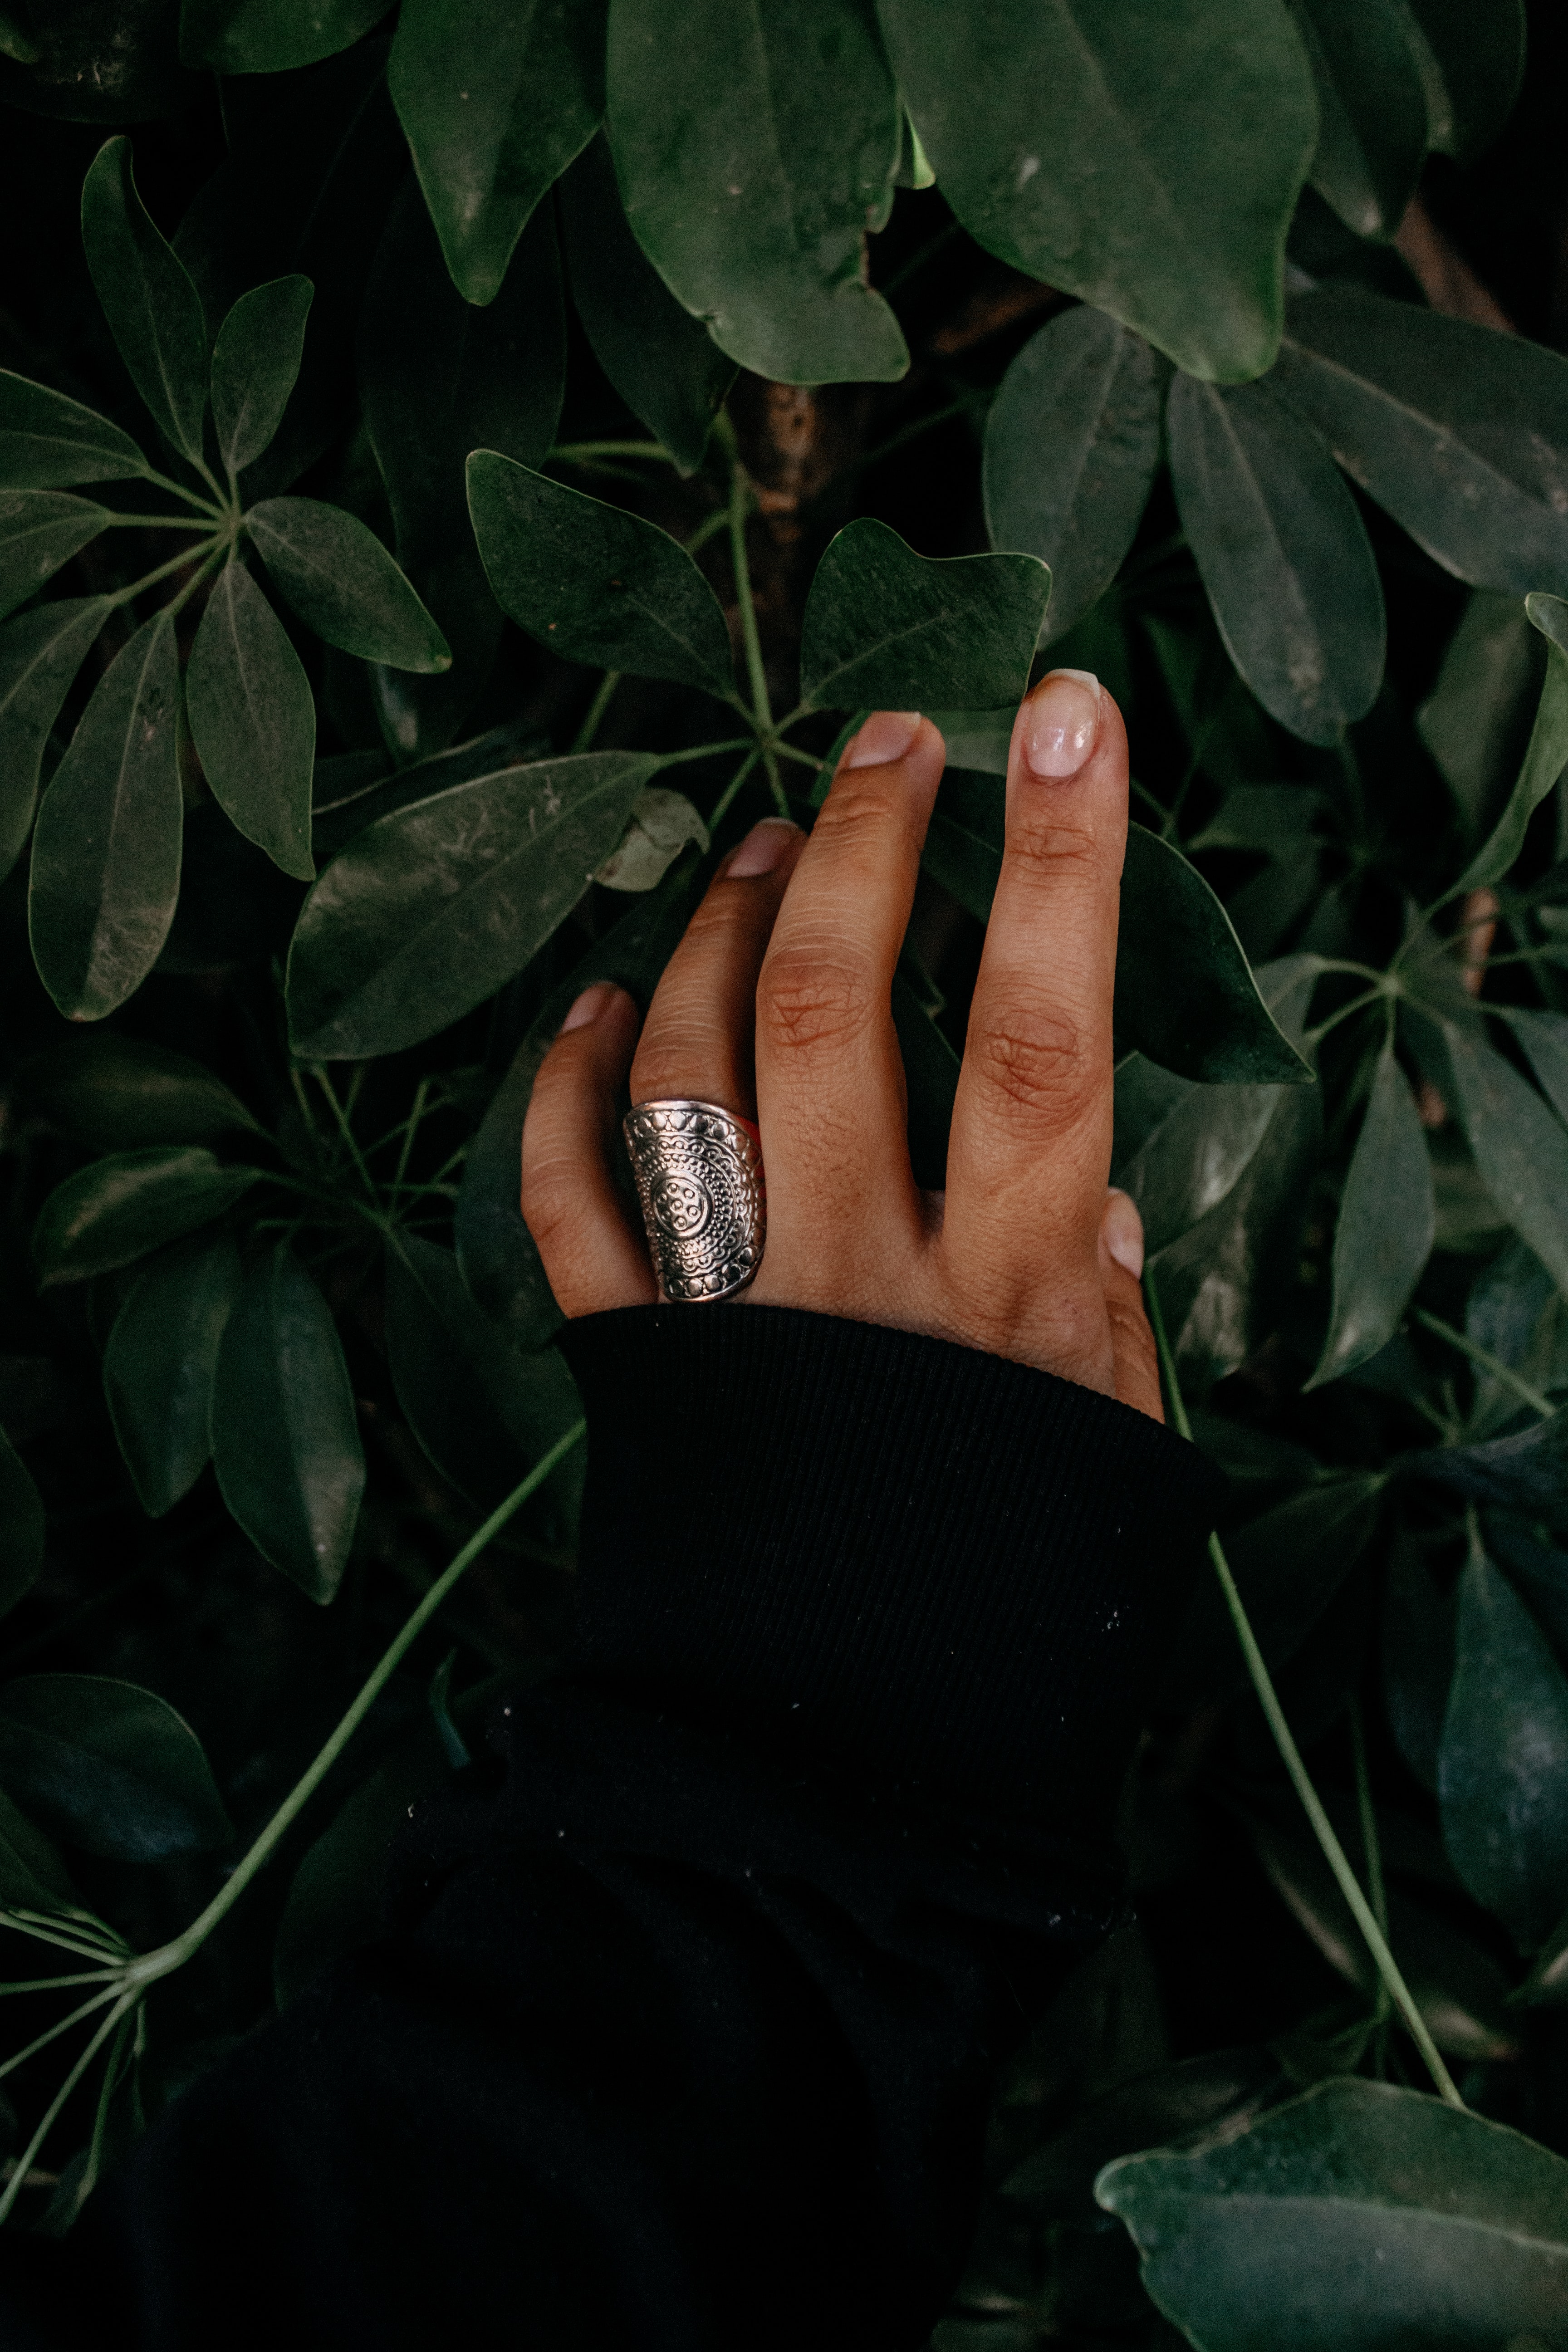 person wearing silver-colored ring and holding green leaves